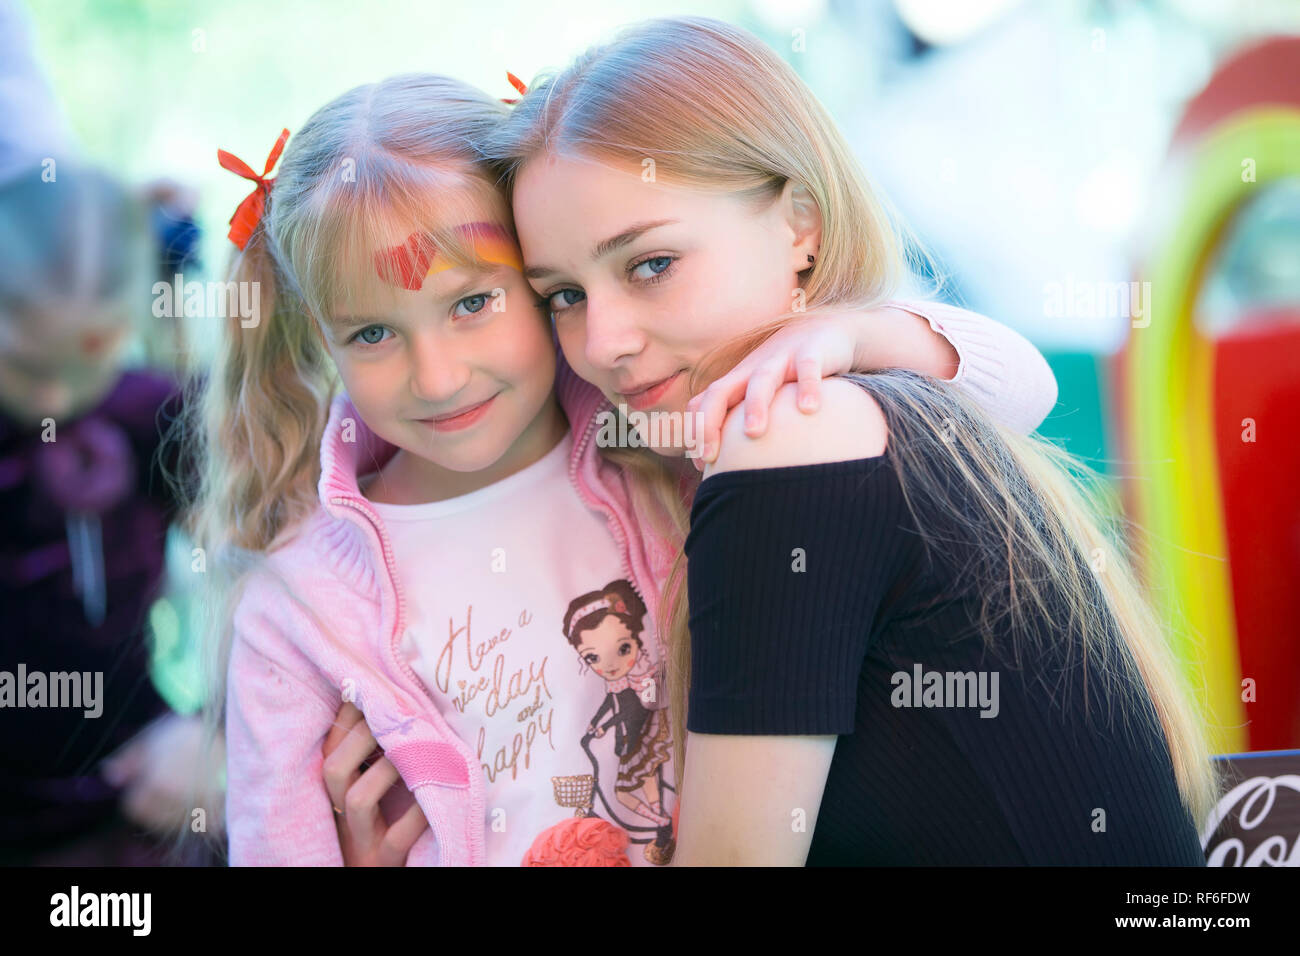 Holiday in the city. Children's Pavilion.Older sister and younger sister - Stock Image